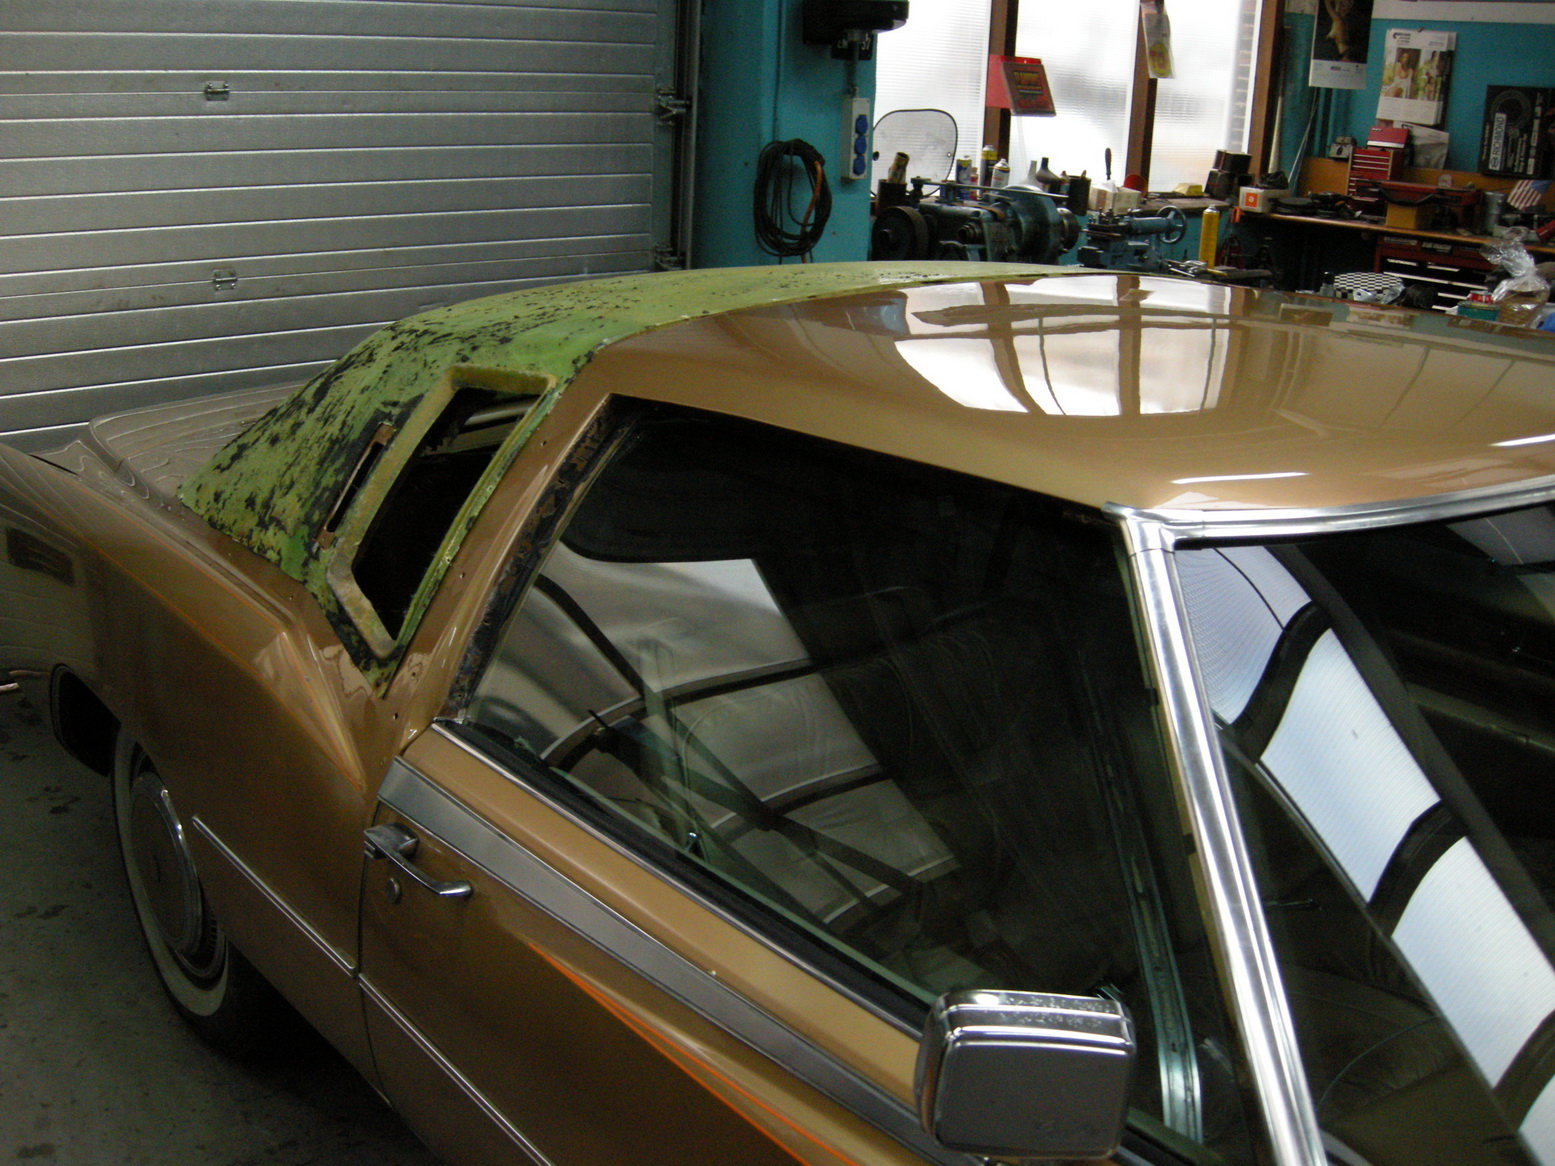 20101209 1977 cadillac eldorado biarritz roof nearly done 09